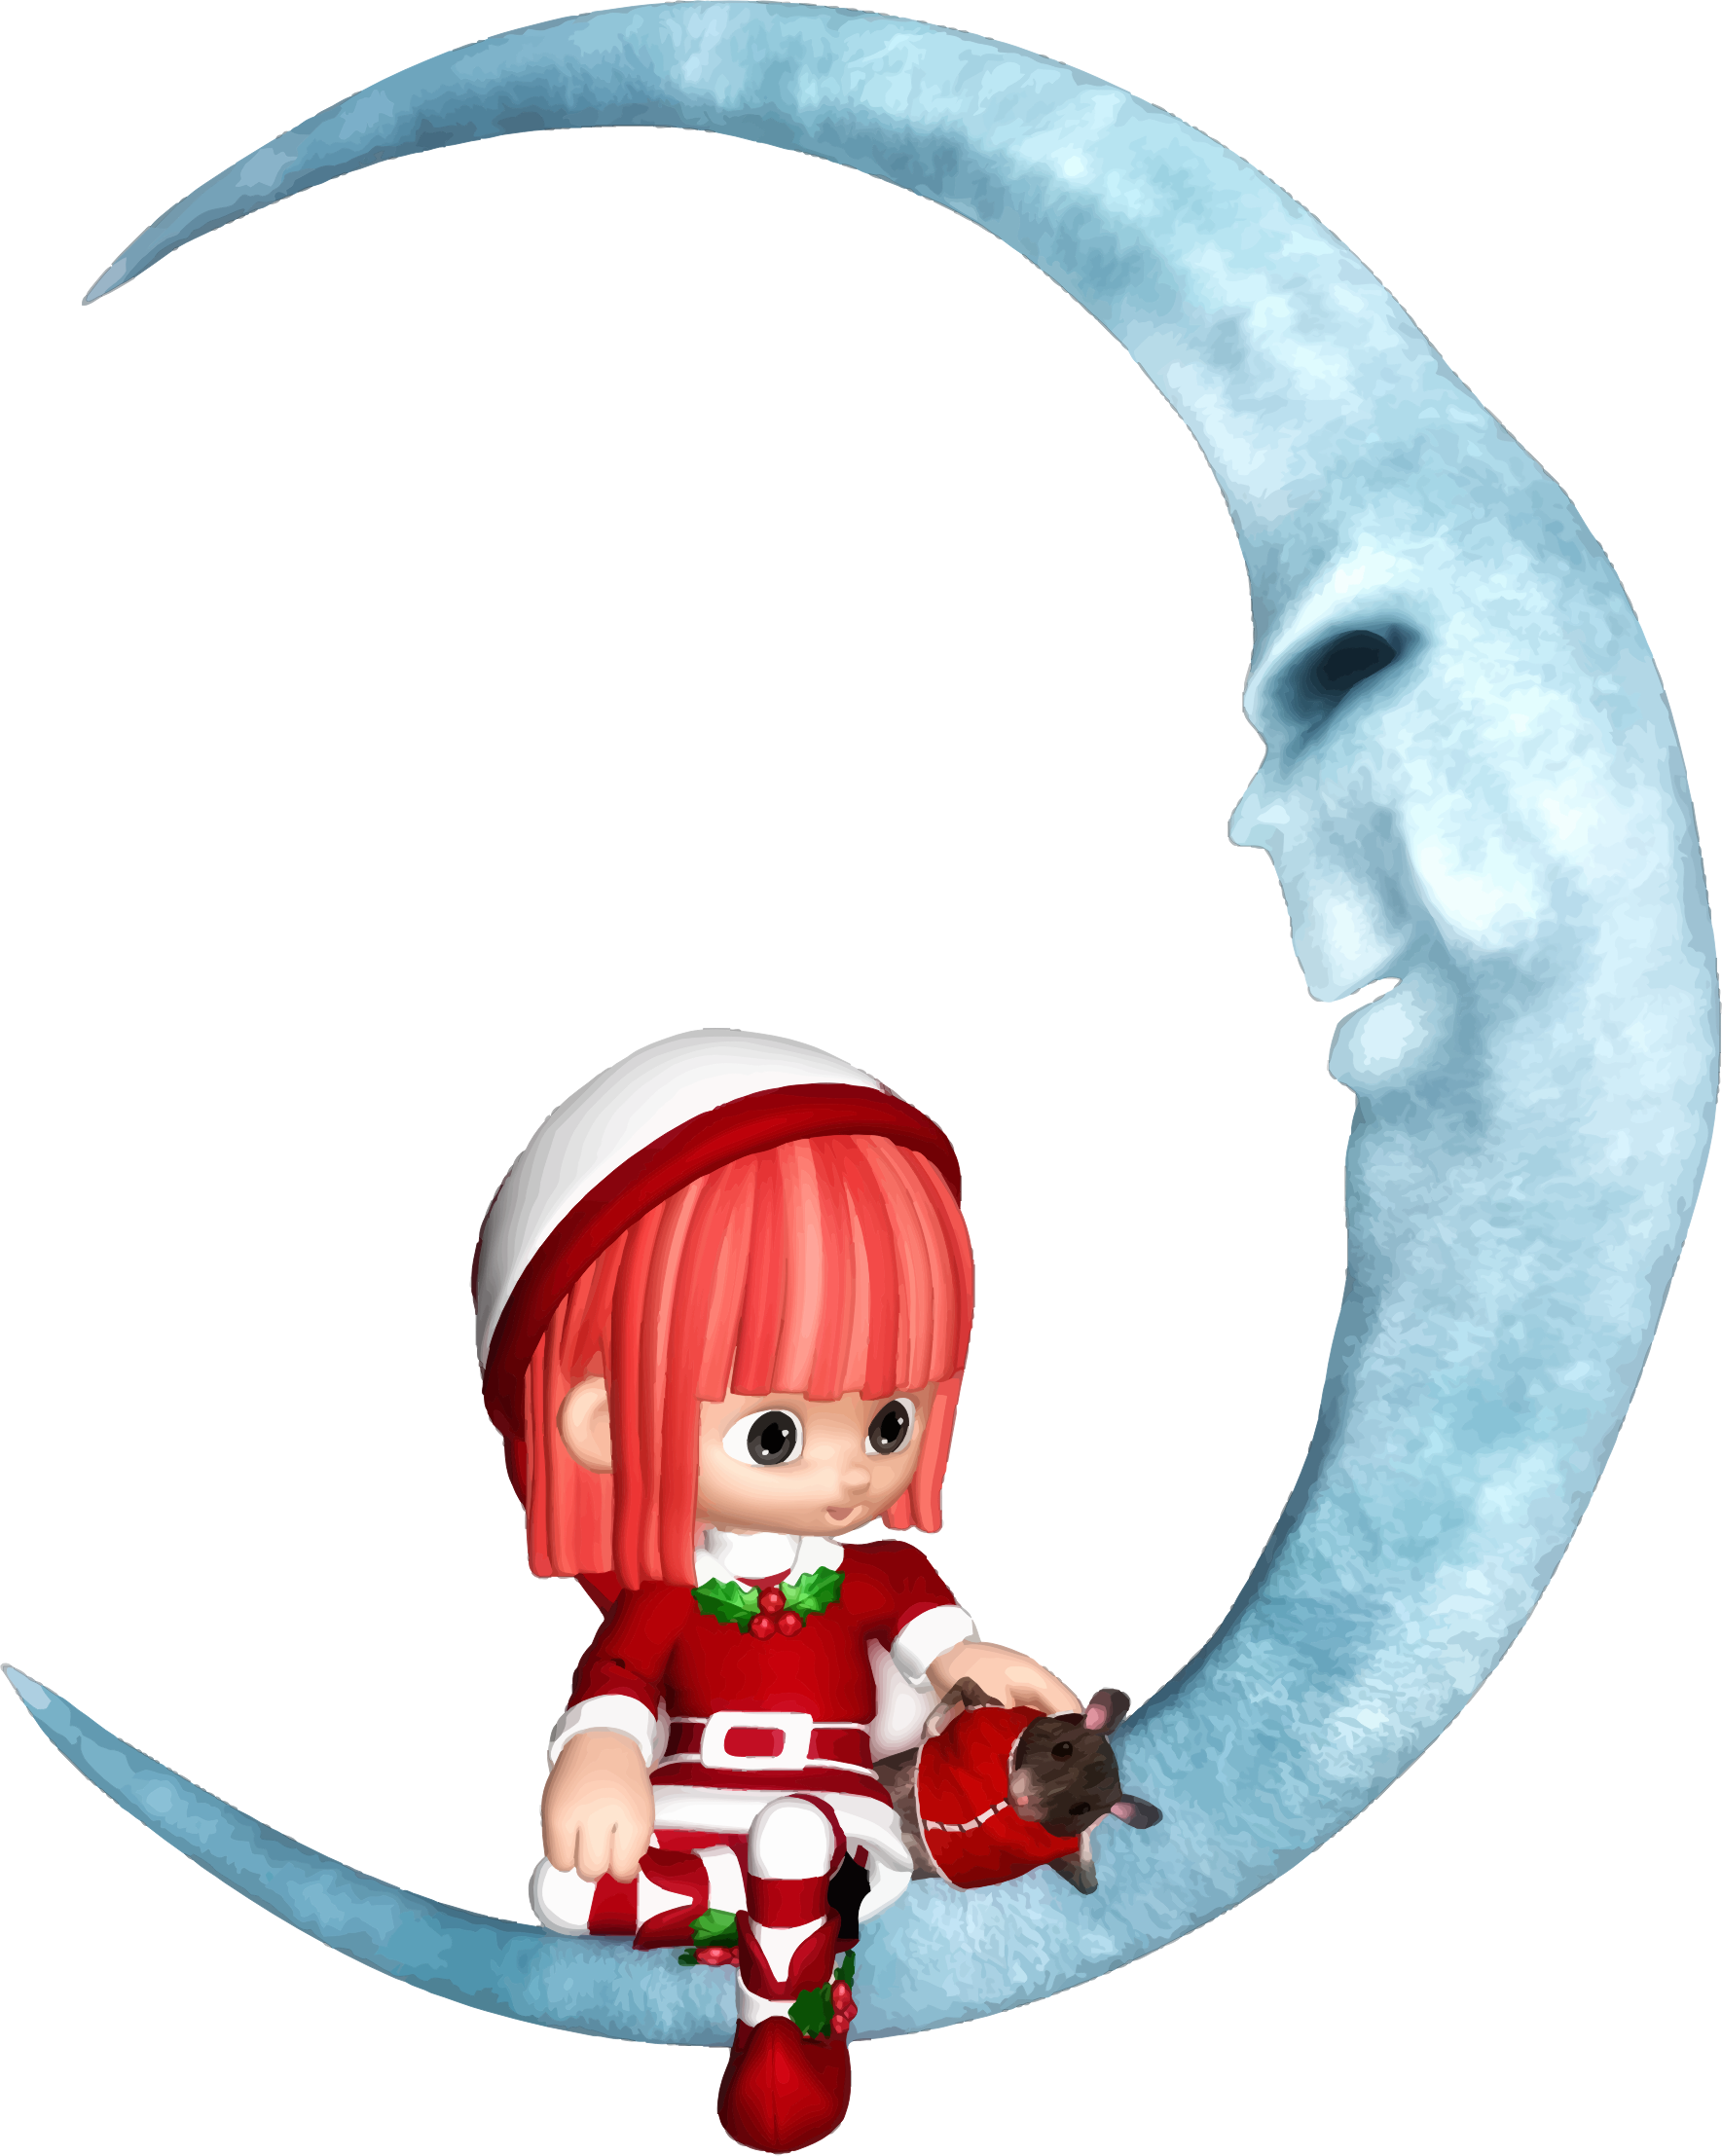 Elf Sitting On Crescent Moon by GDJ